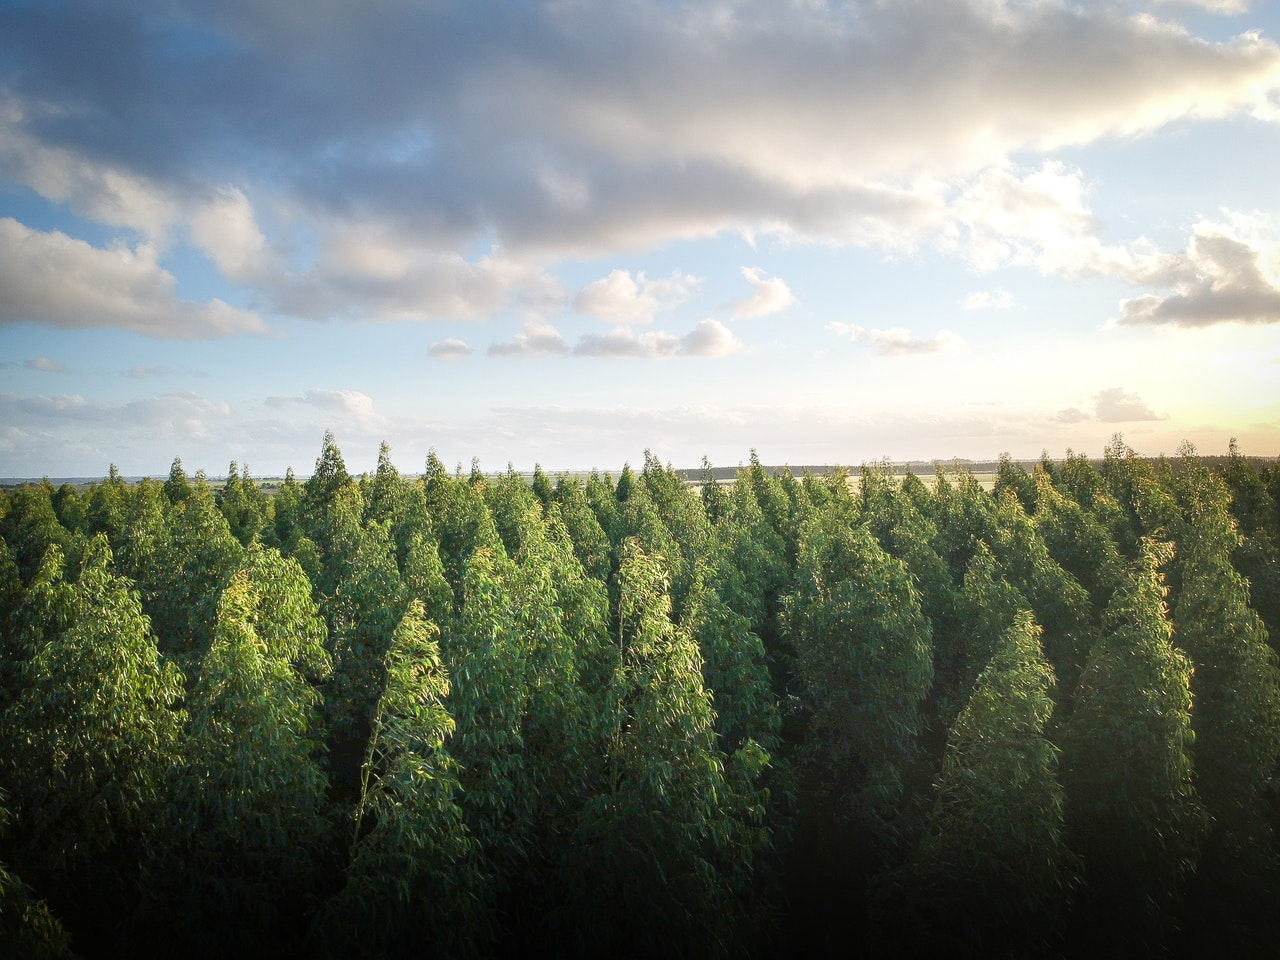 Planting forests for sustainable development